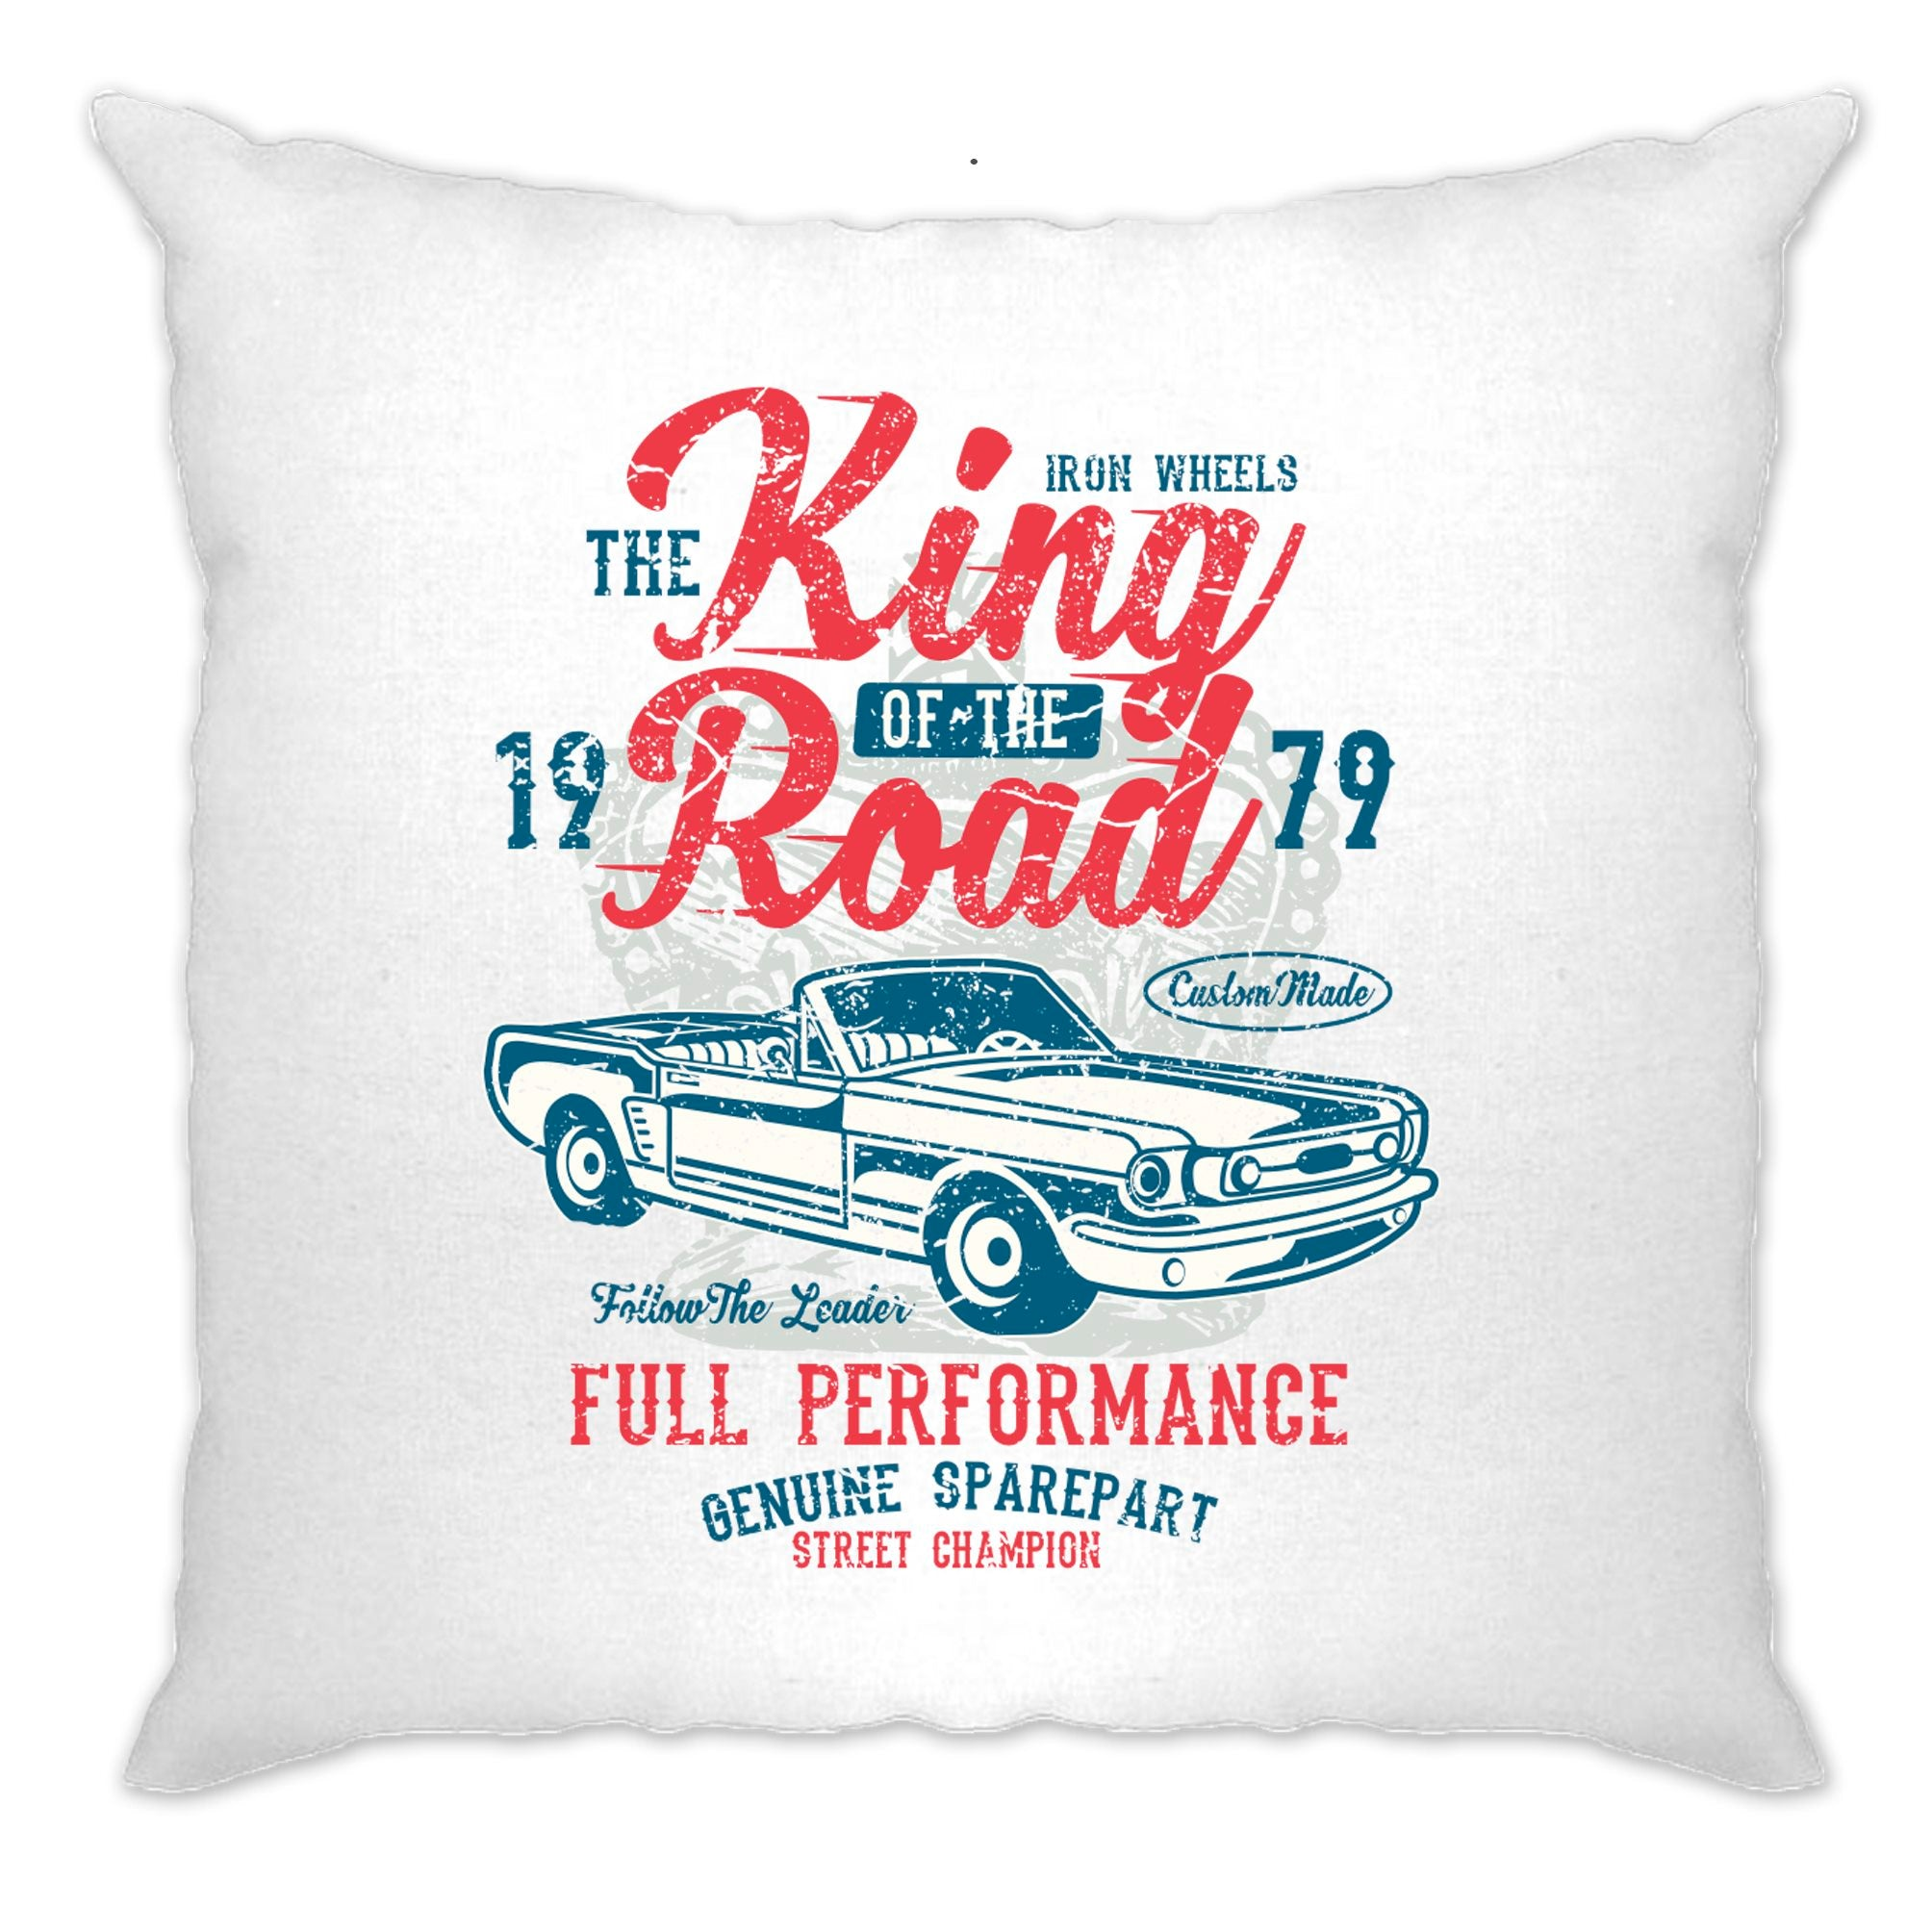 Retro Car Cushion Cover King Of The Road 1979 Racing Art